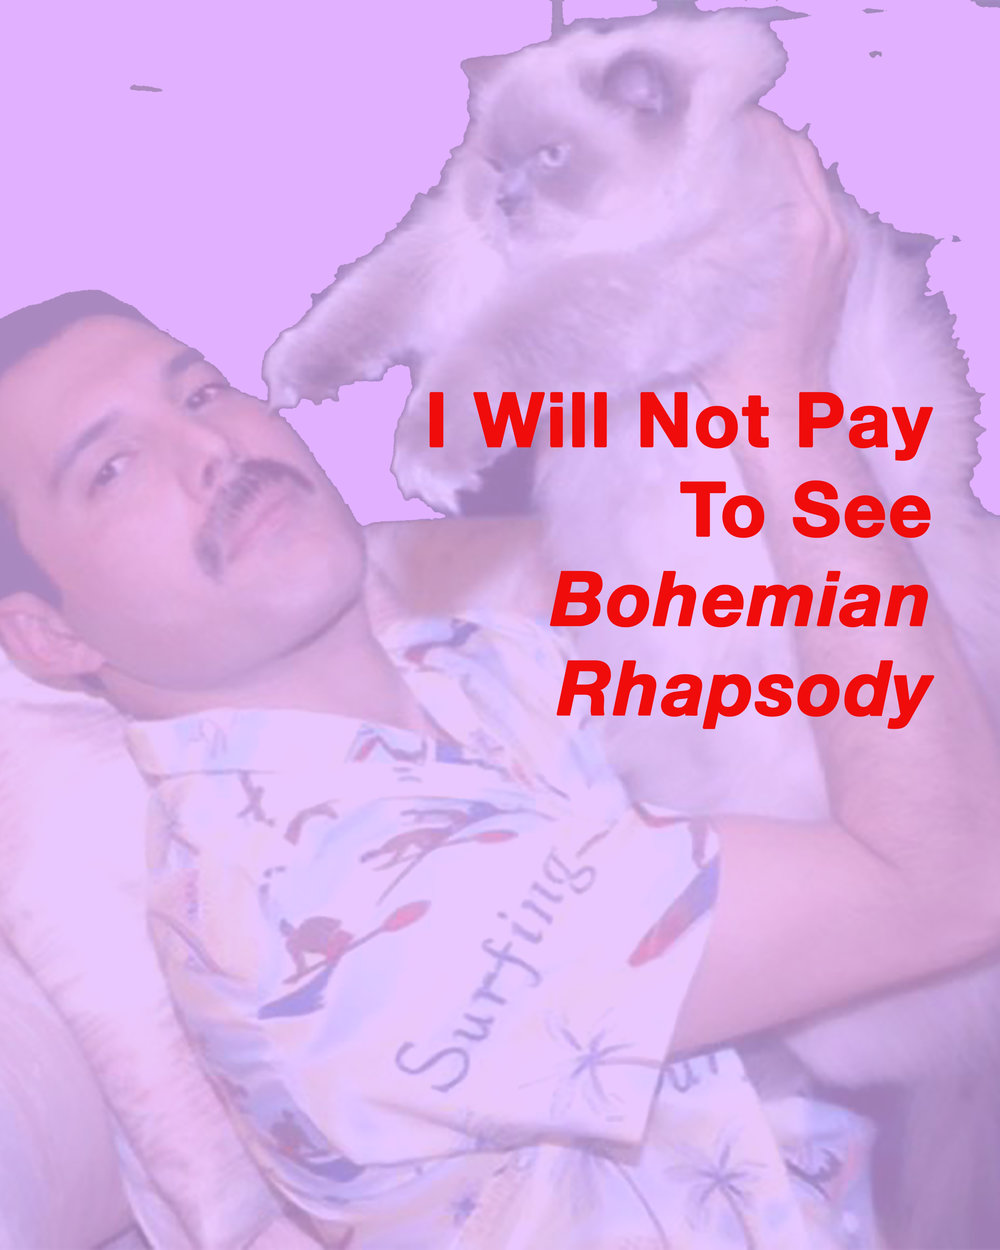 I Will Not Pay To See Bohemian Rhapsody